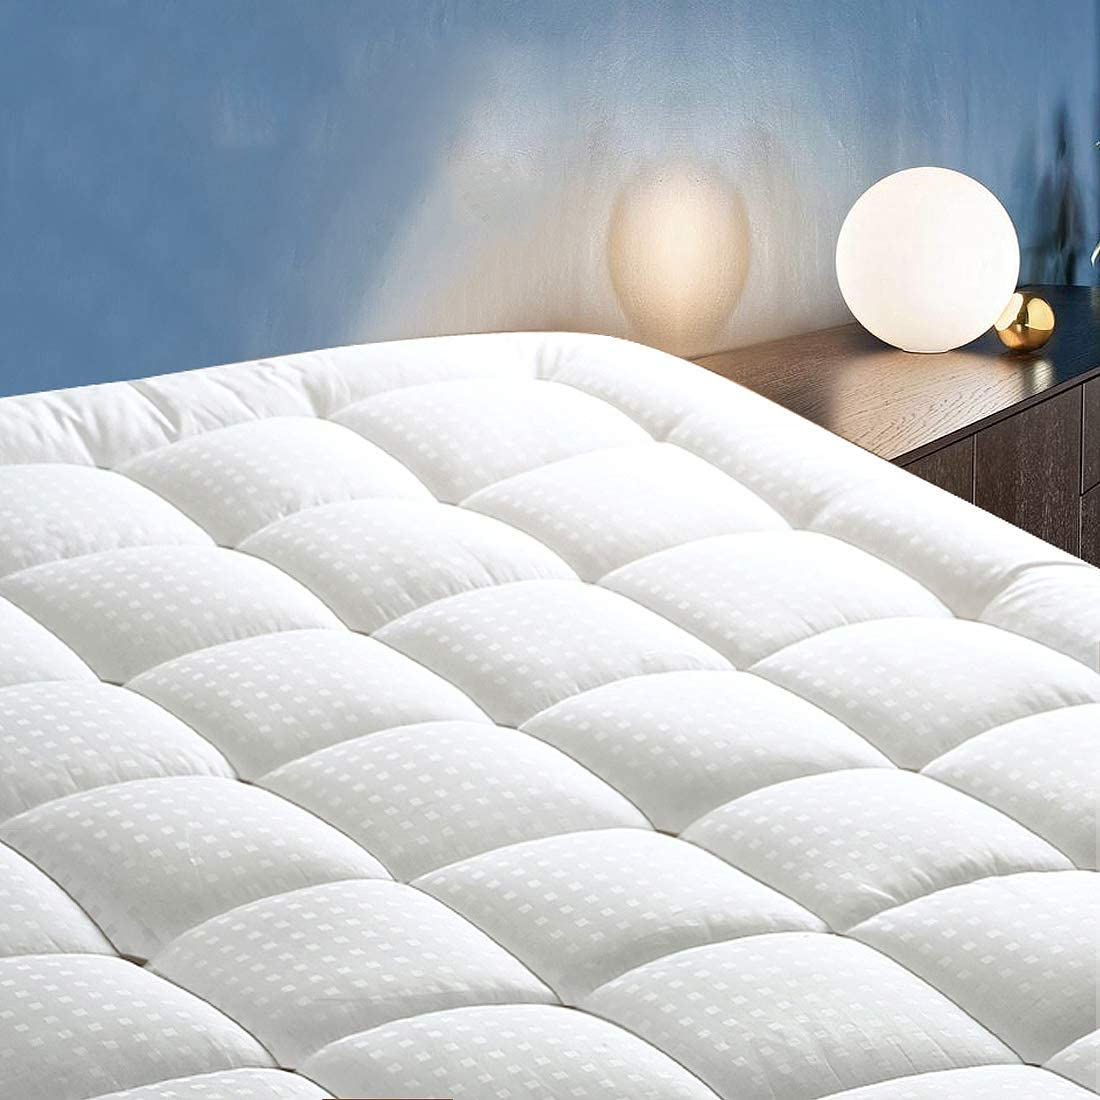 "COTTONHOUSE Queen Size Cooling Mattress Topper Pad Cover, Cotton Top Pillow Top with Down Alternative Fill (8-21"" Fitted Deep Pocket)"